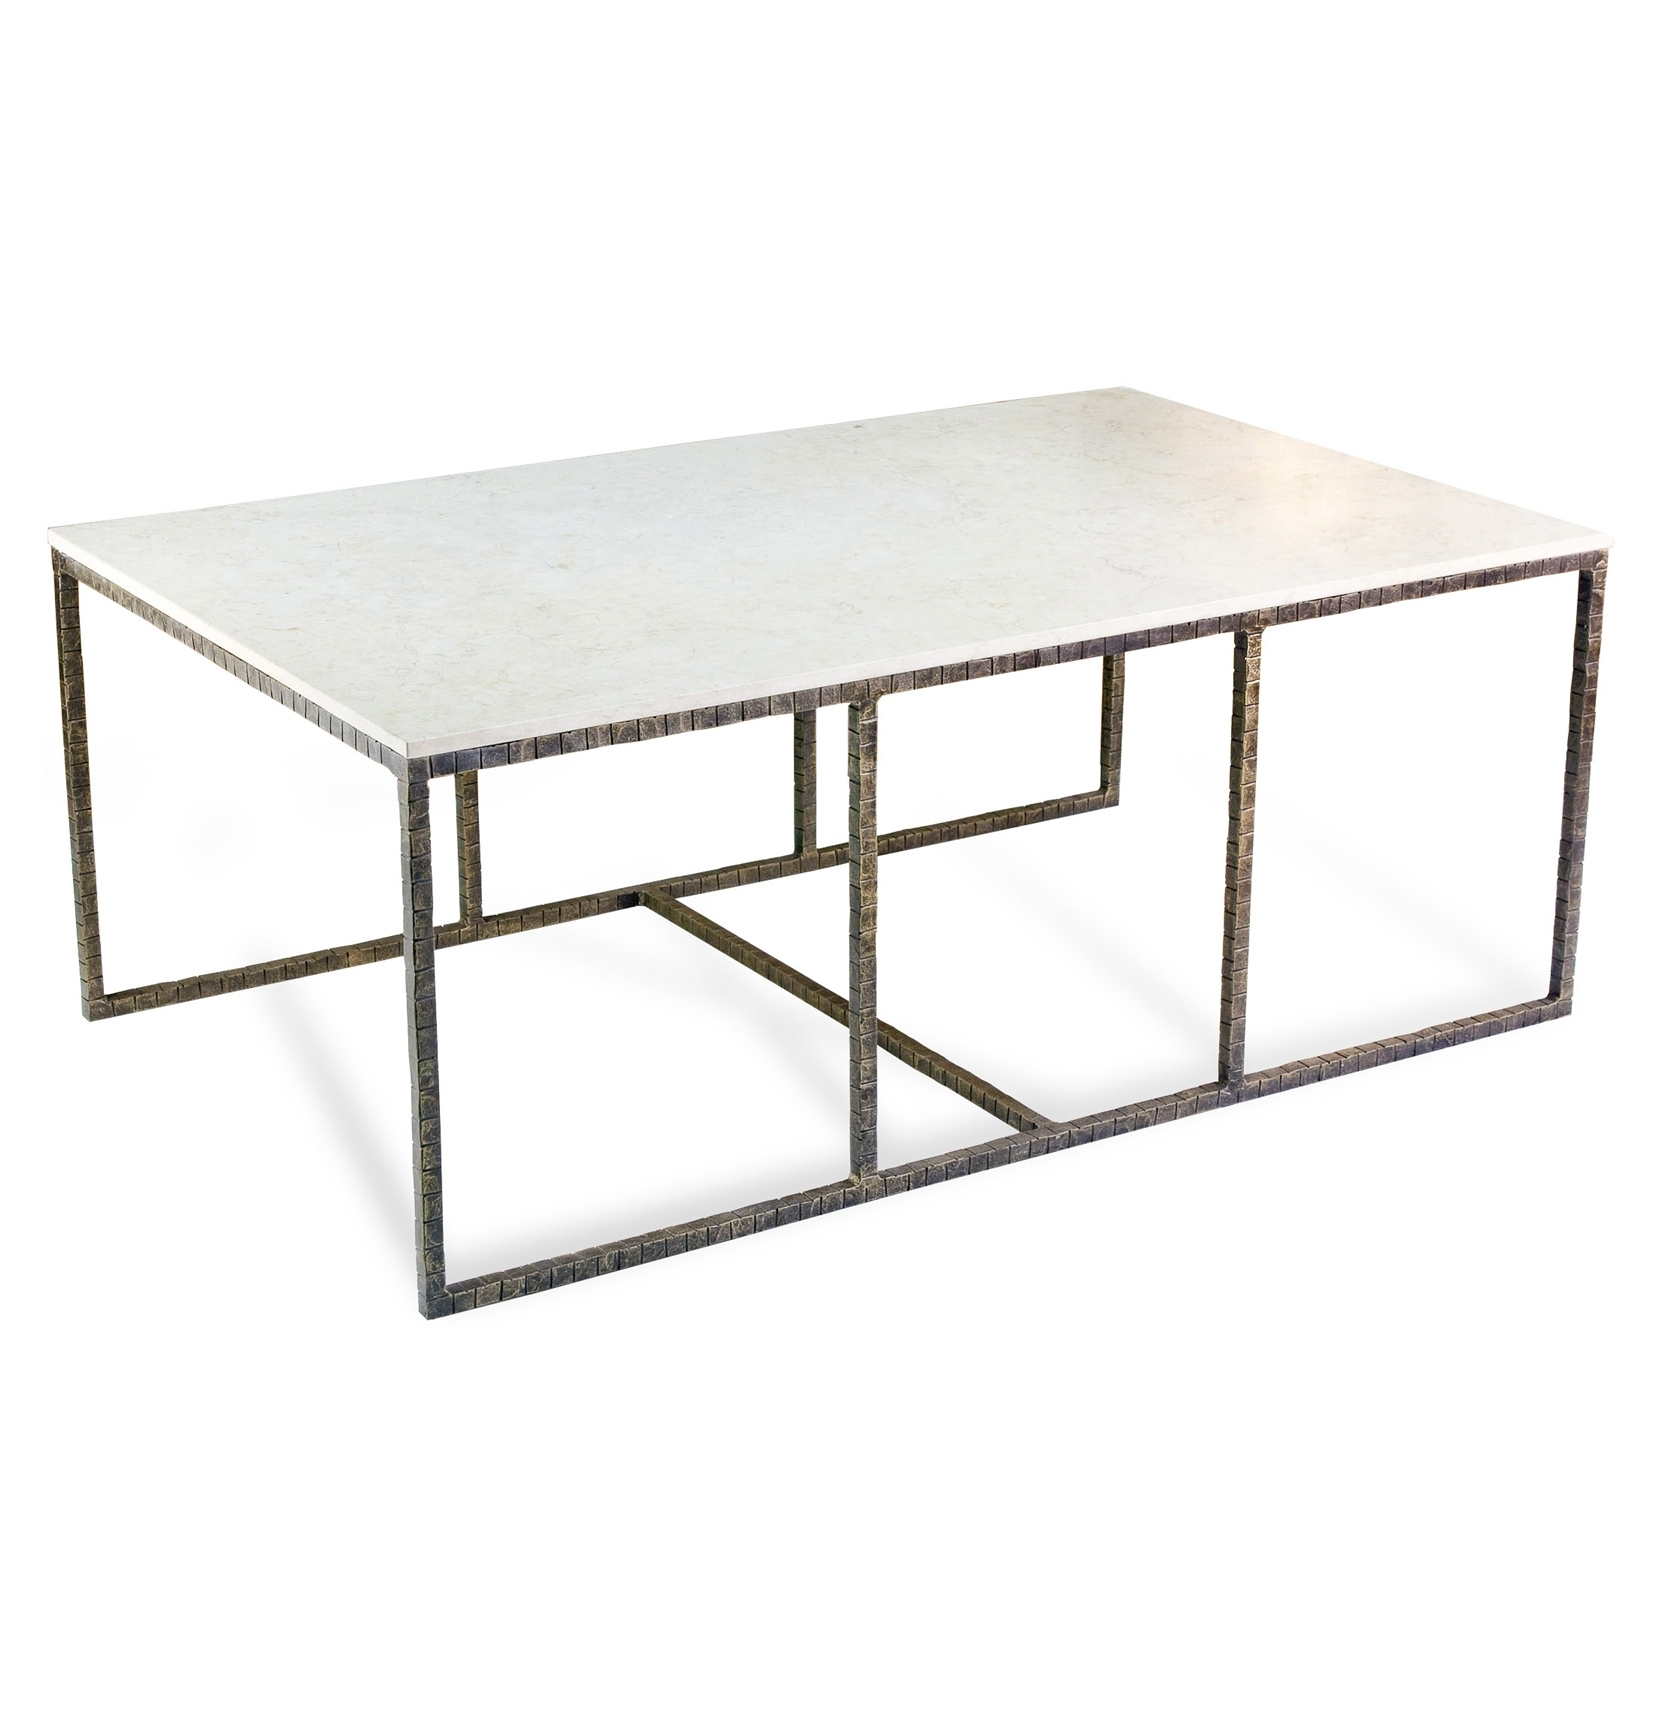 Open Storage Metal Framing Coffee Table Design Come With White regarding Modern Marble Iron Coffee Tables (Image 24 of 30)